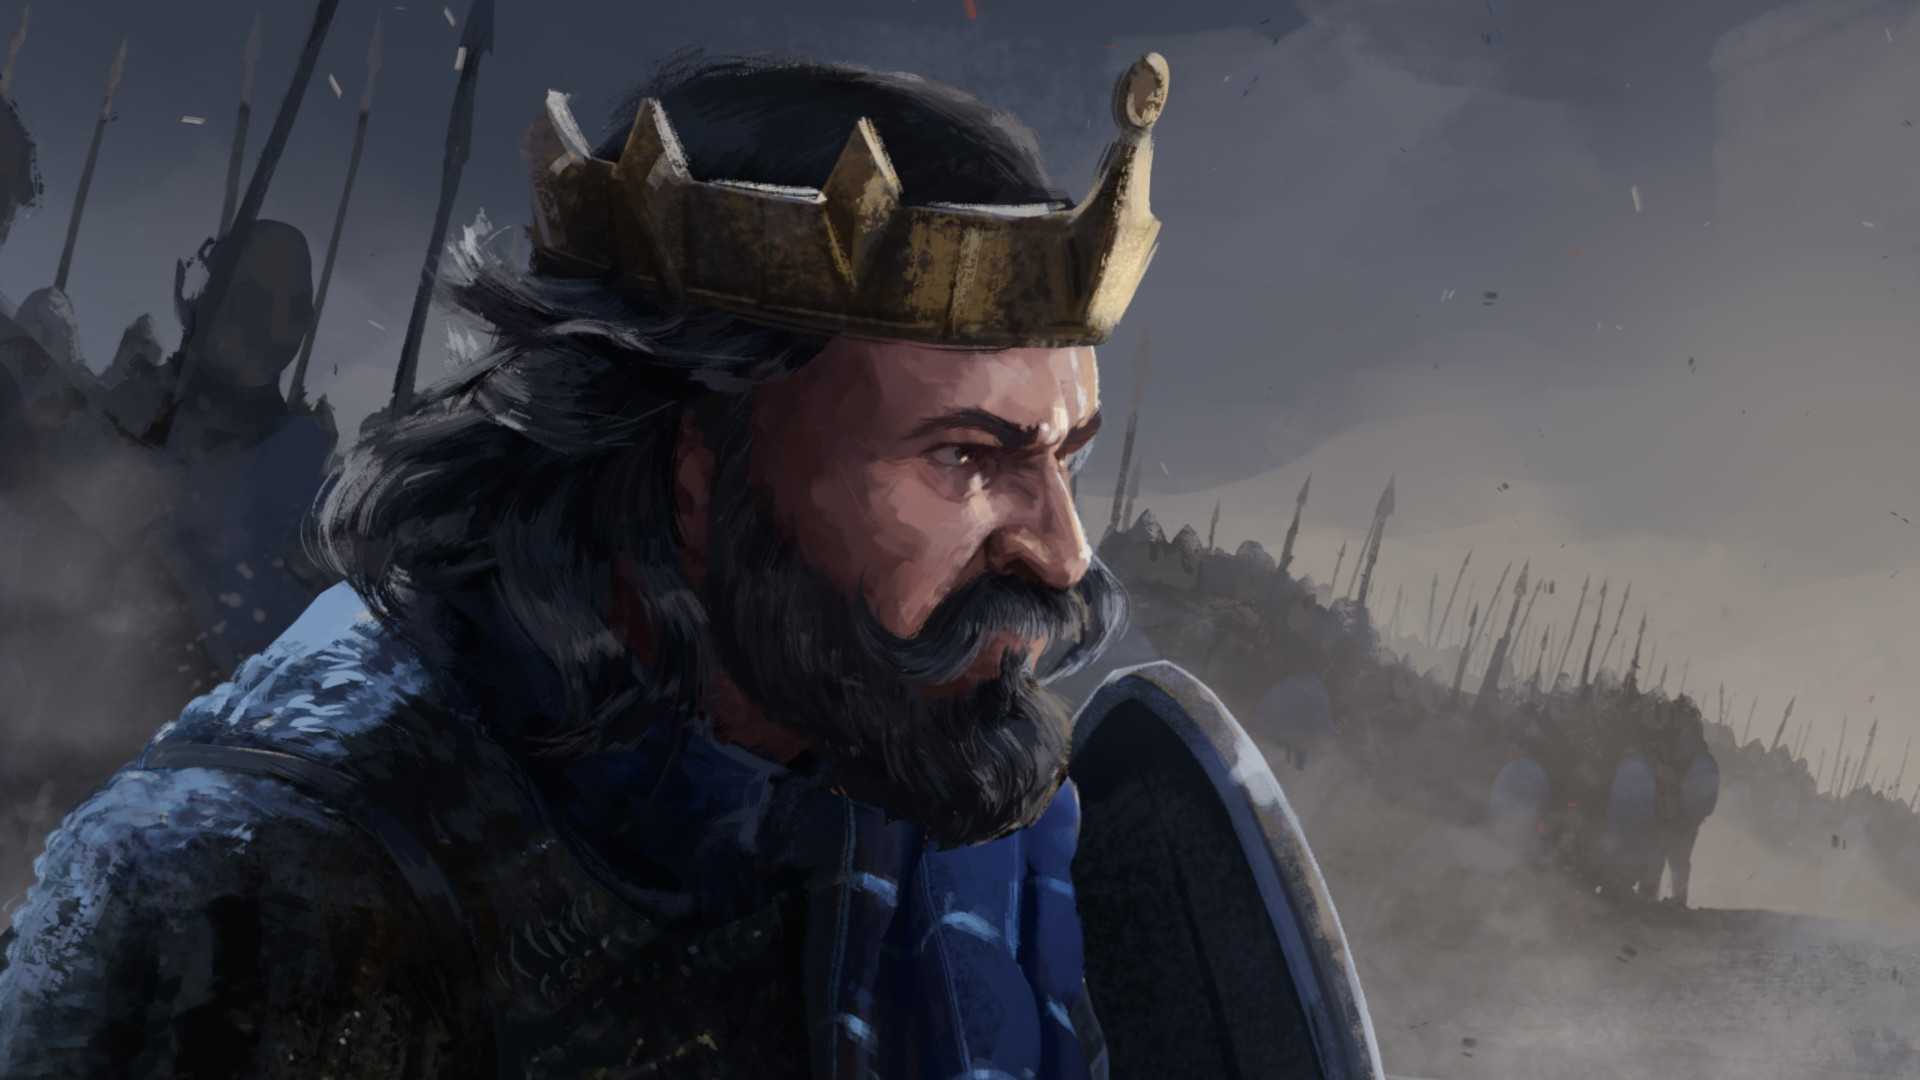 Стратегия Total War Saga: Thrones of Britannia выйдет в последующем году